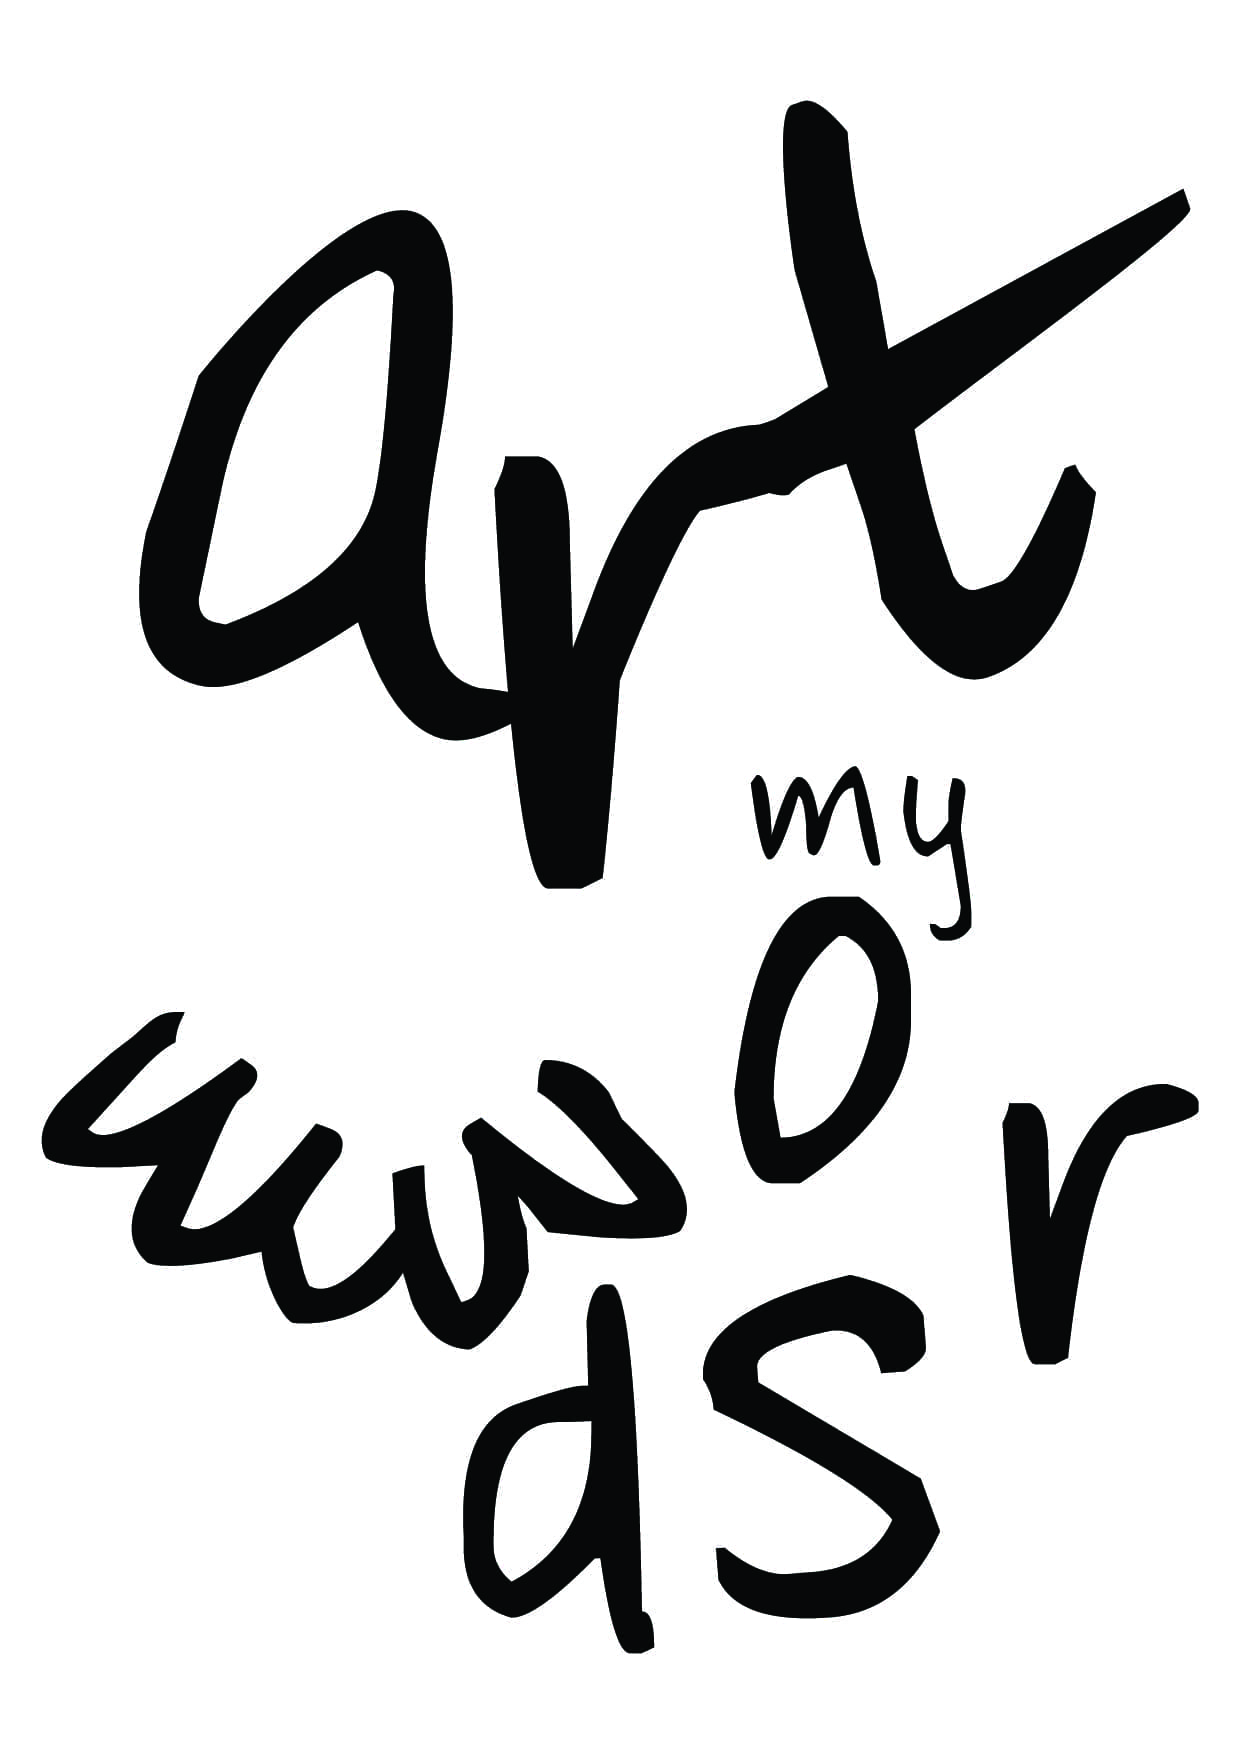 art my words open call